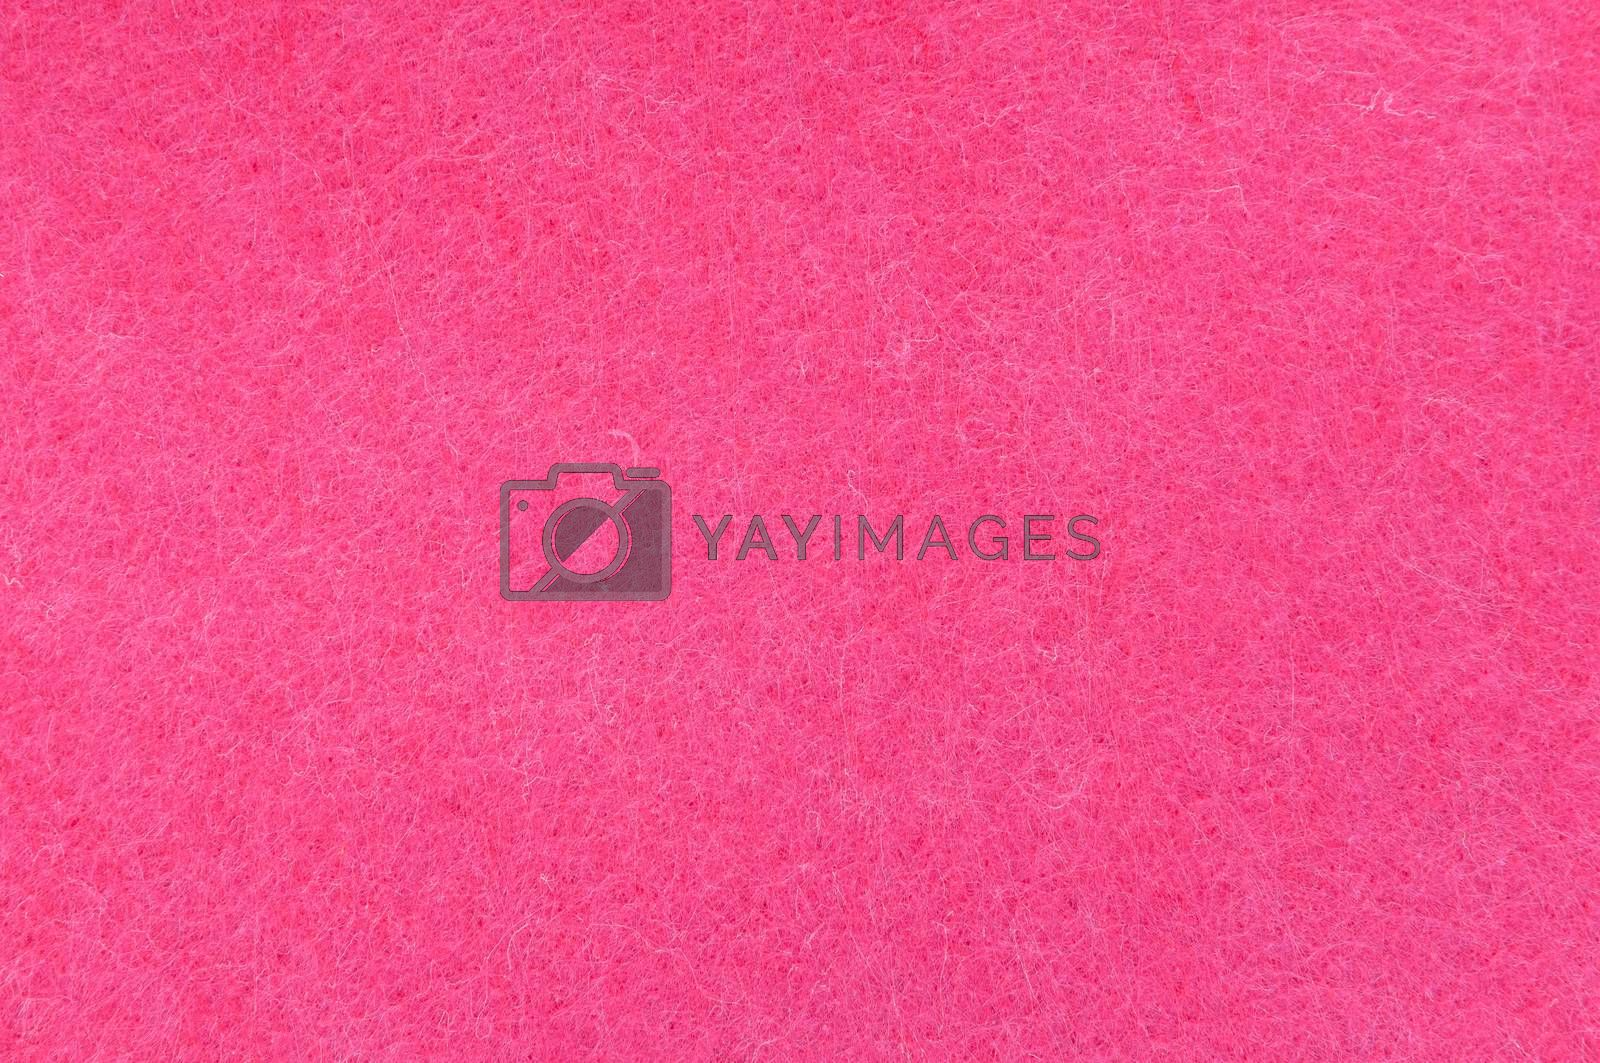 Texture background of Pink velvet or flannel as backdrop or wallpaper pattern for decoration